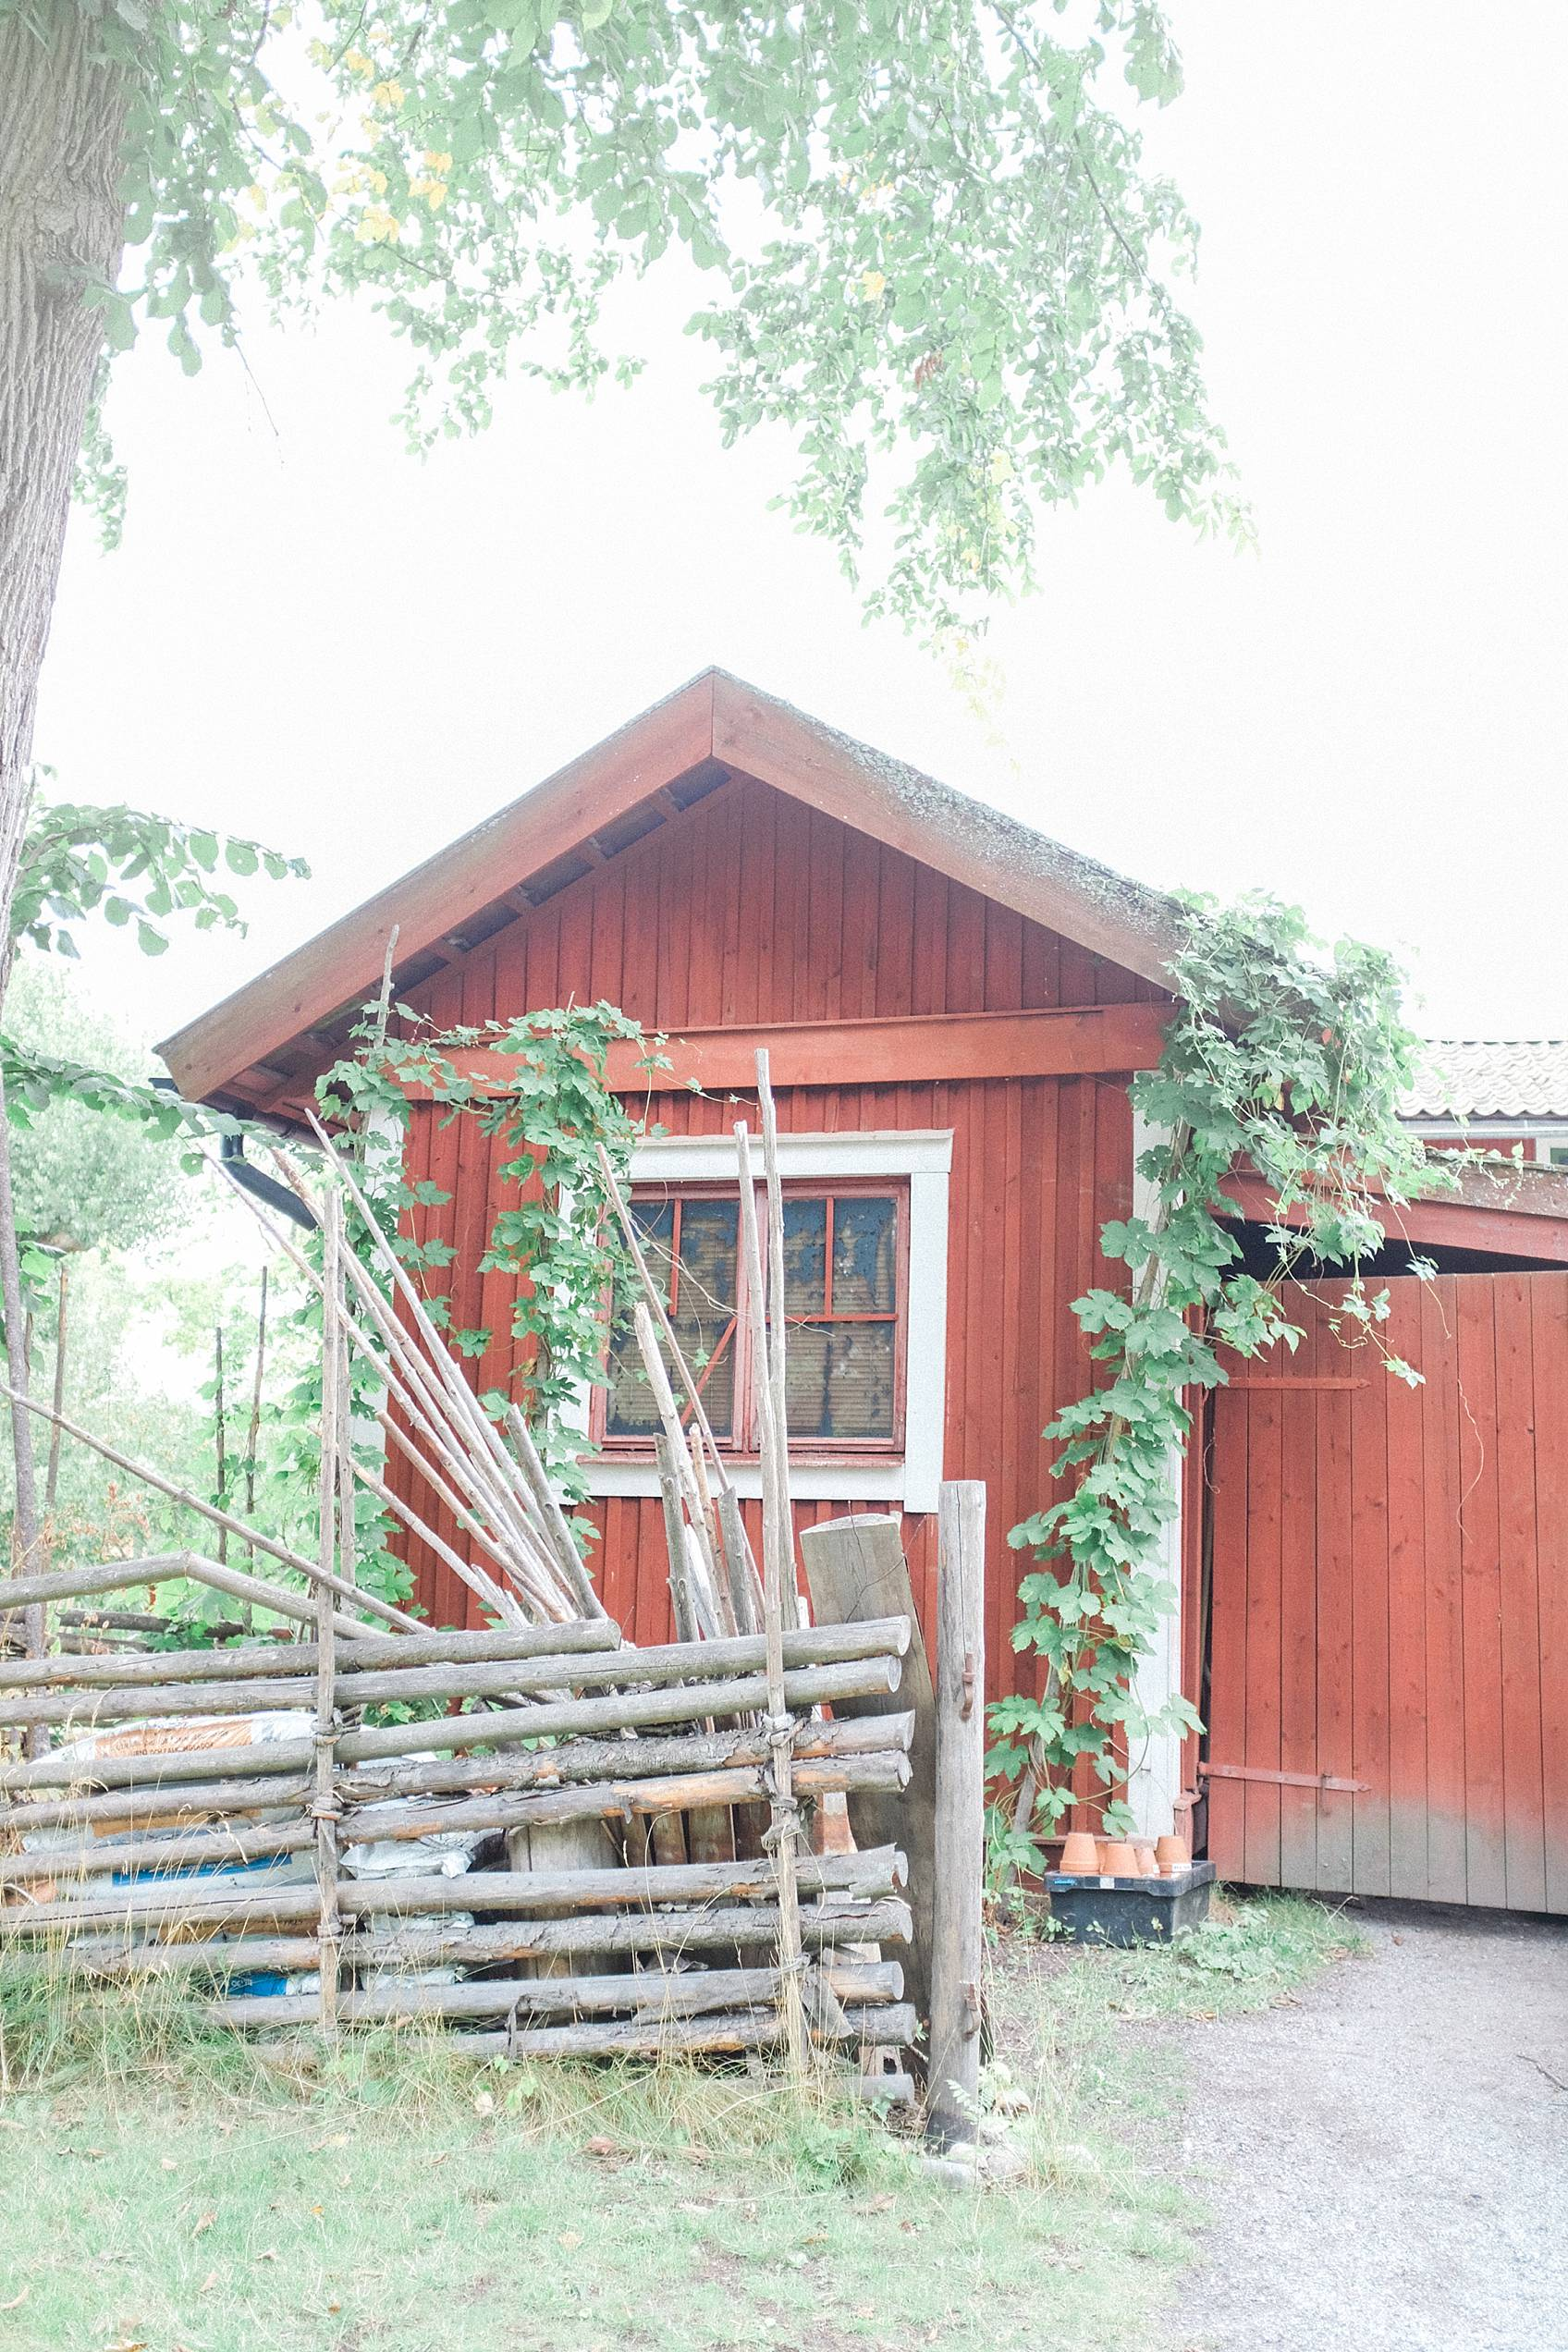 skansen stockholm cottage living decor for inspiration, red house with greenery vines growing